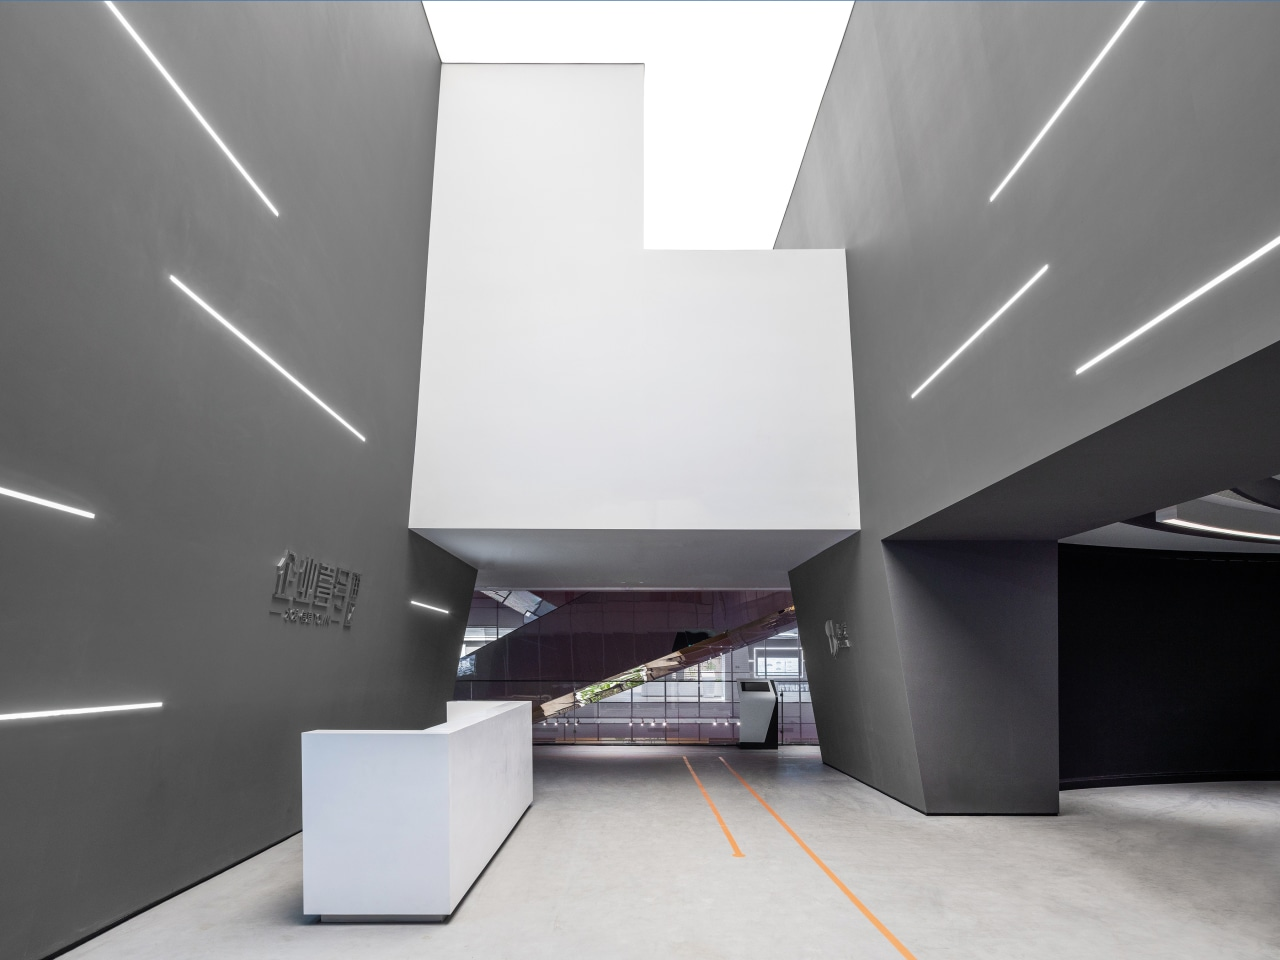 Upon entering the building, visitors are drawn from